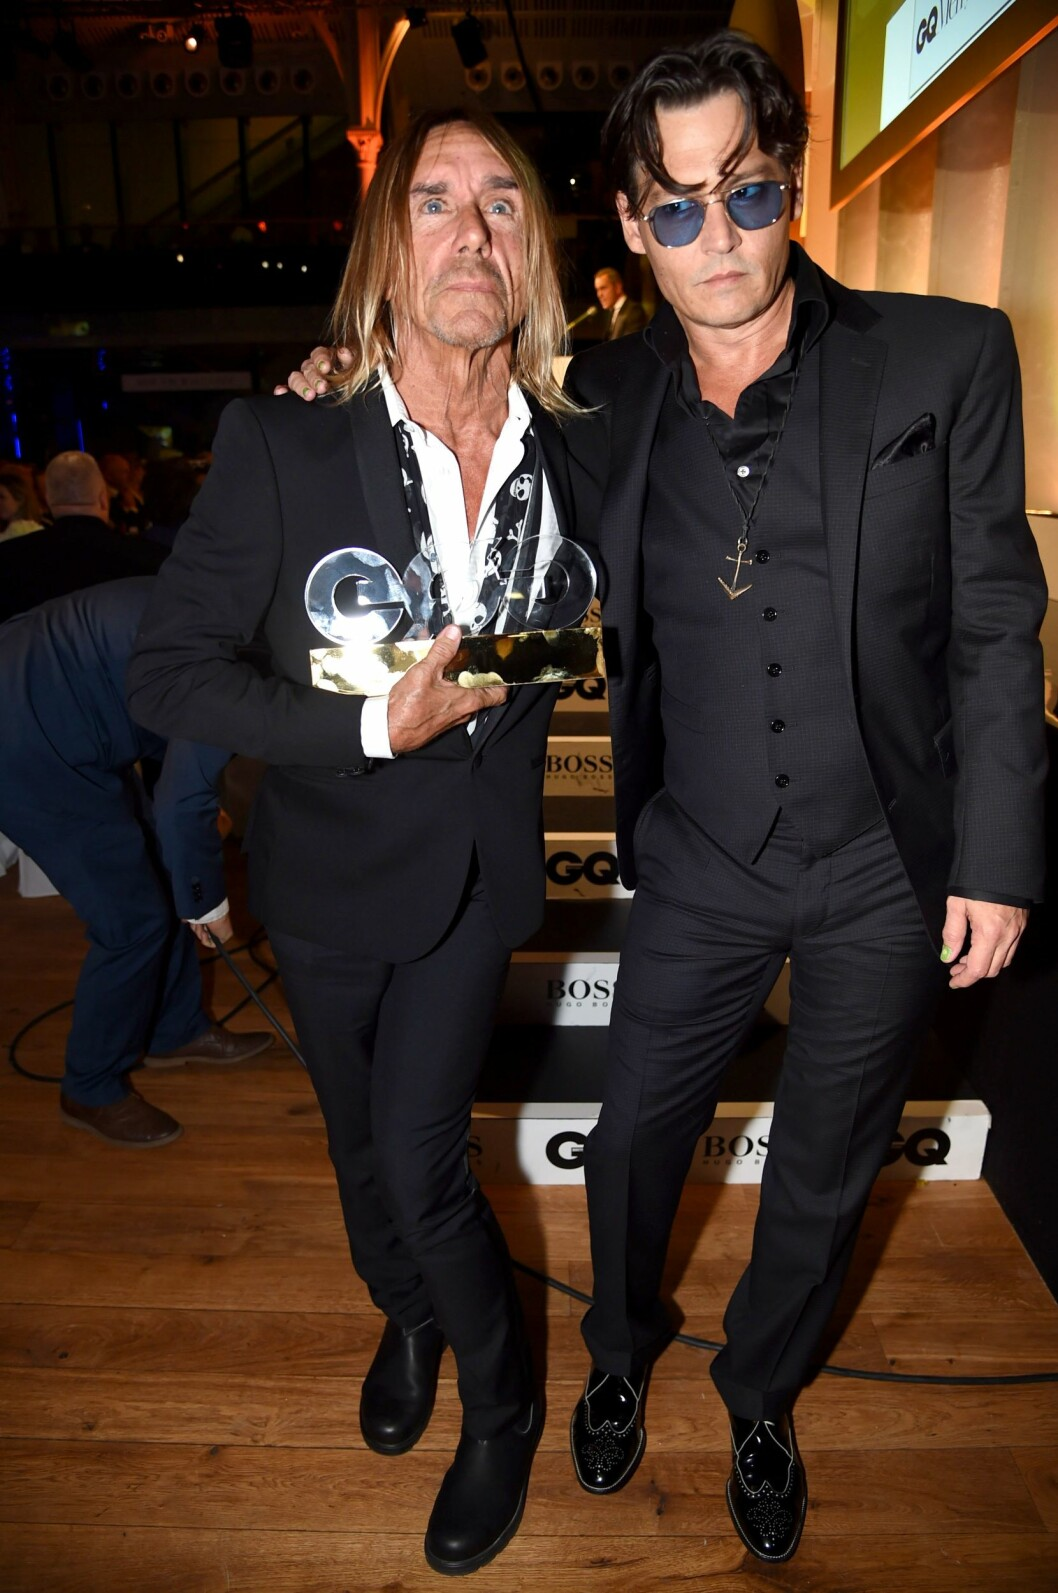 ROCKA DUO: Iggy Pop fikk prisen «årets ikon», overrukket av filmstjernen Johnny Depp (t.h). Foto: REX/Richard Young /All Over Press